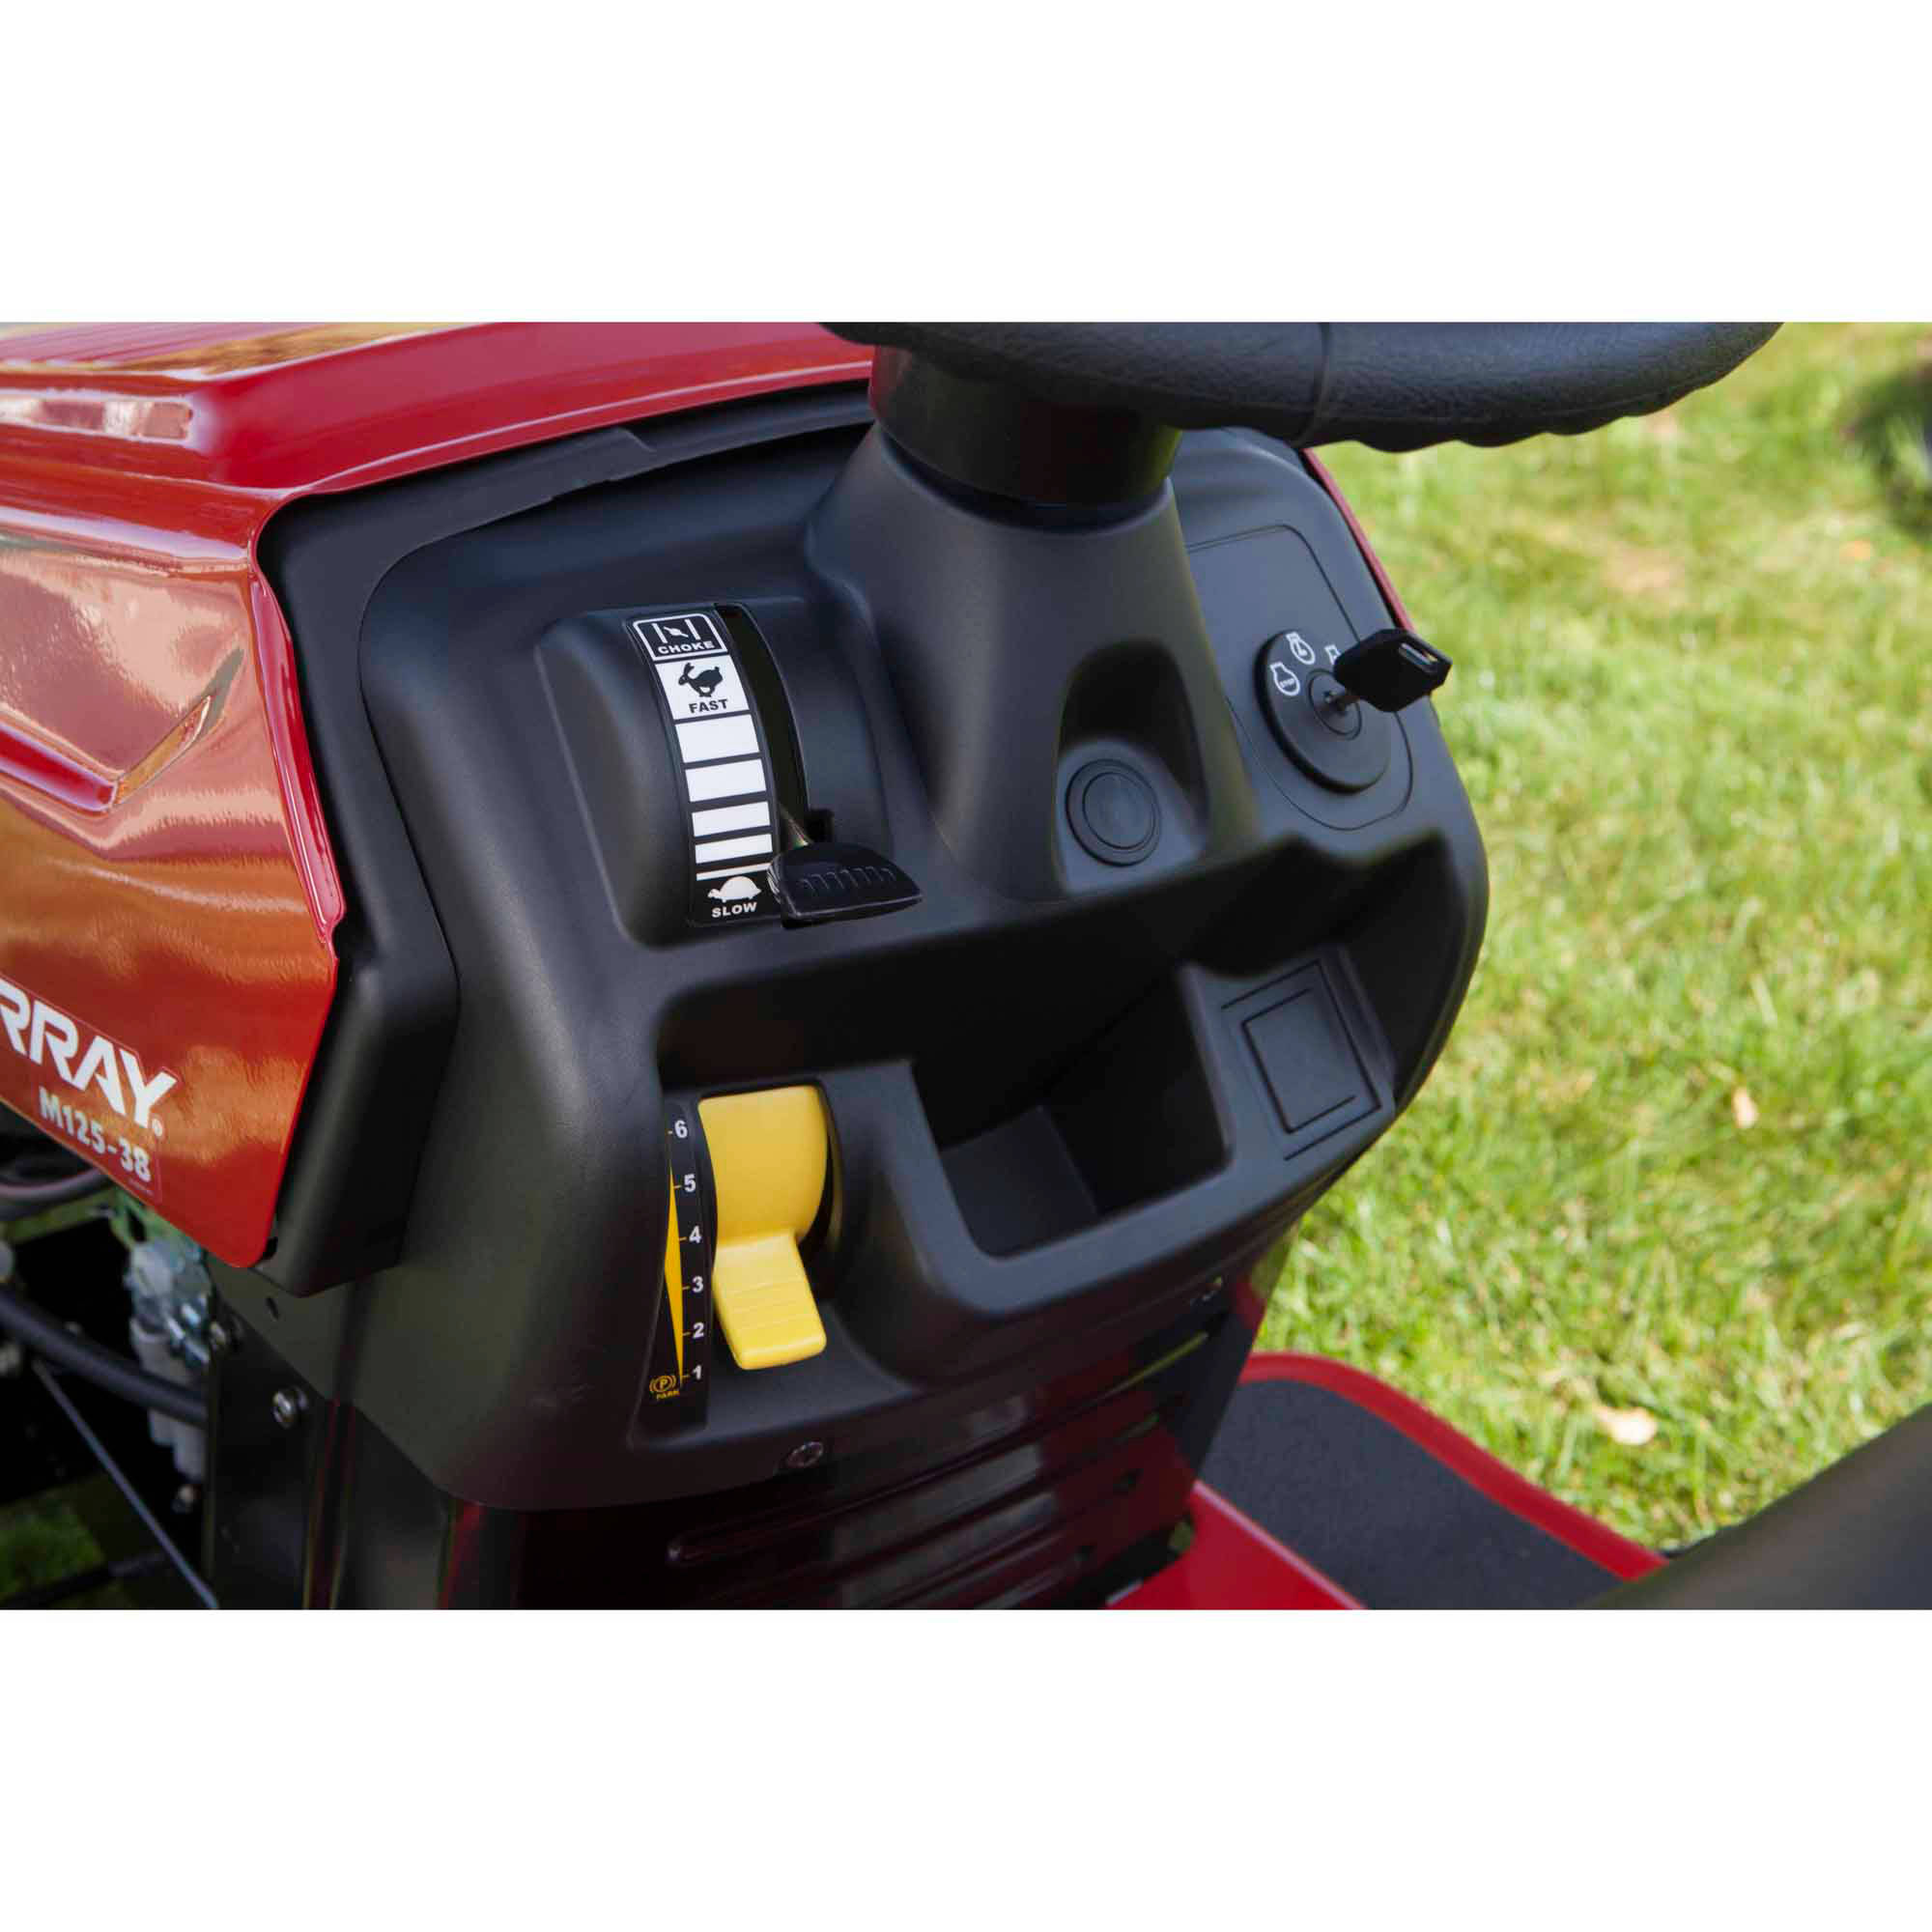 "Murray 13BC76LF058 38"" 11 5 HP Riding Mower Walmart"